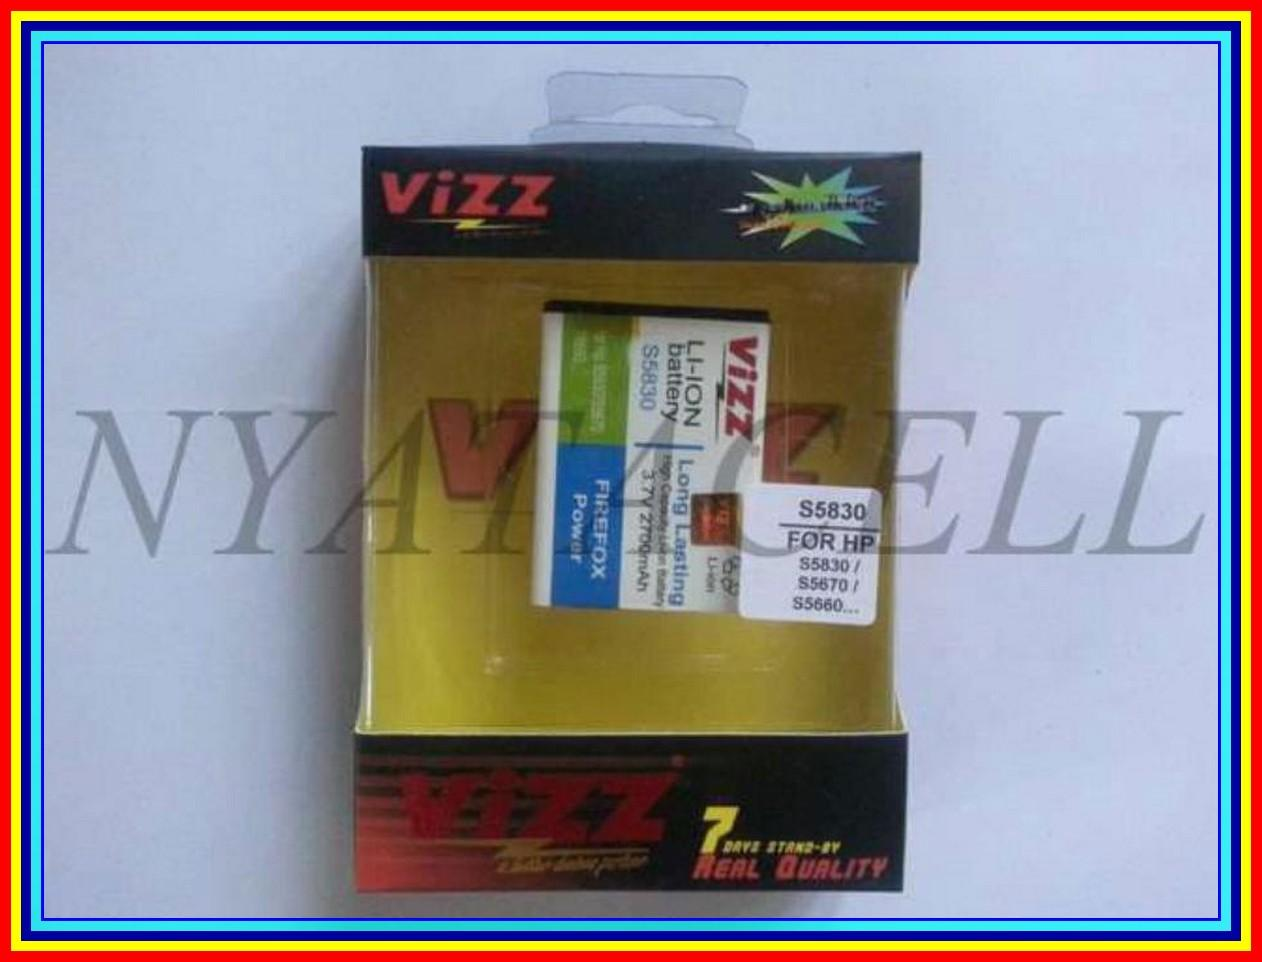 Fame 2700Mah Batre Baterai Vizz Double Power Samsung Young 2 S6310